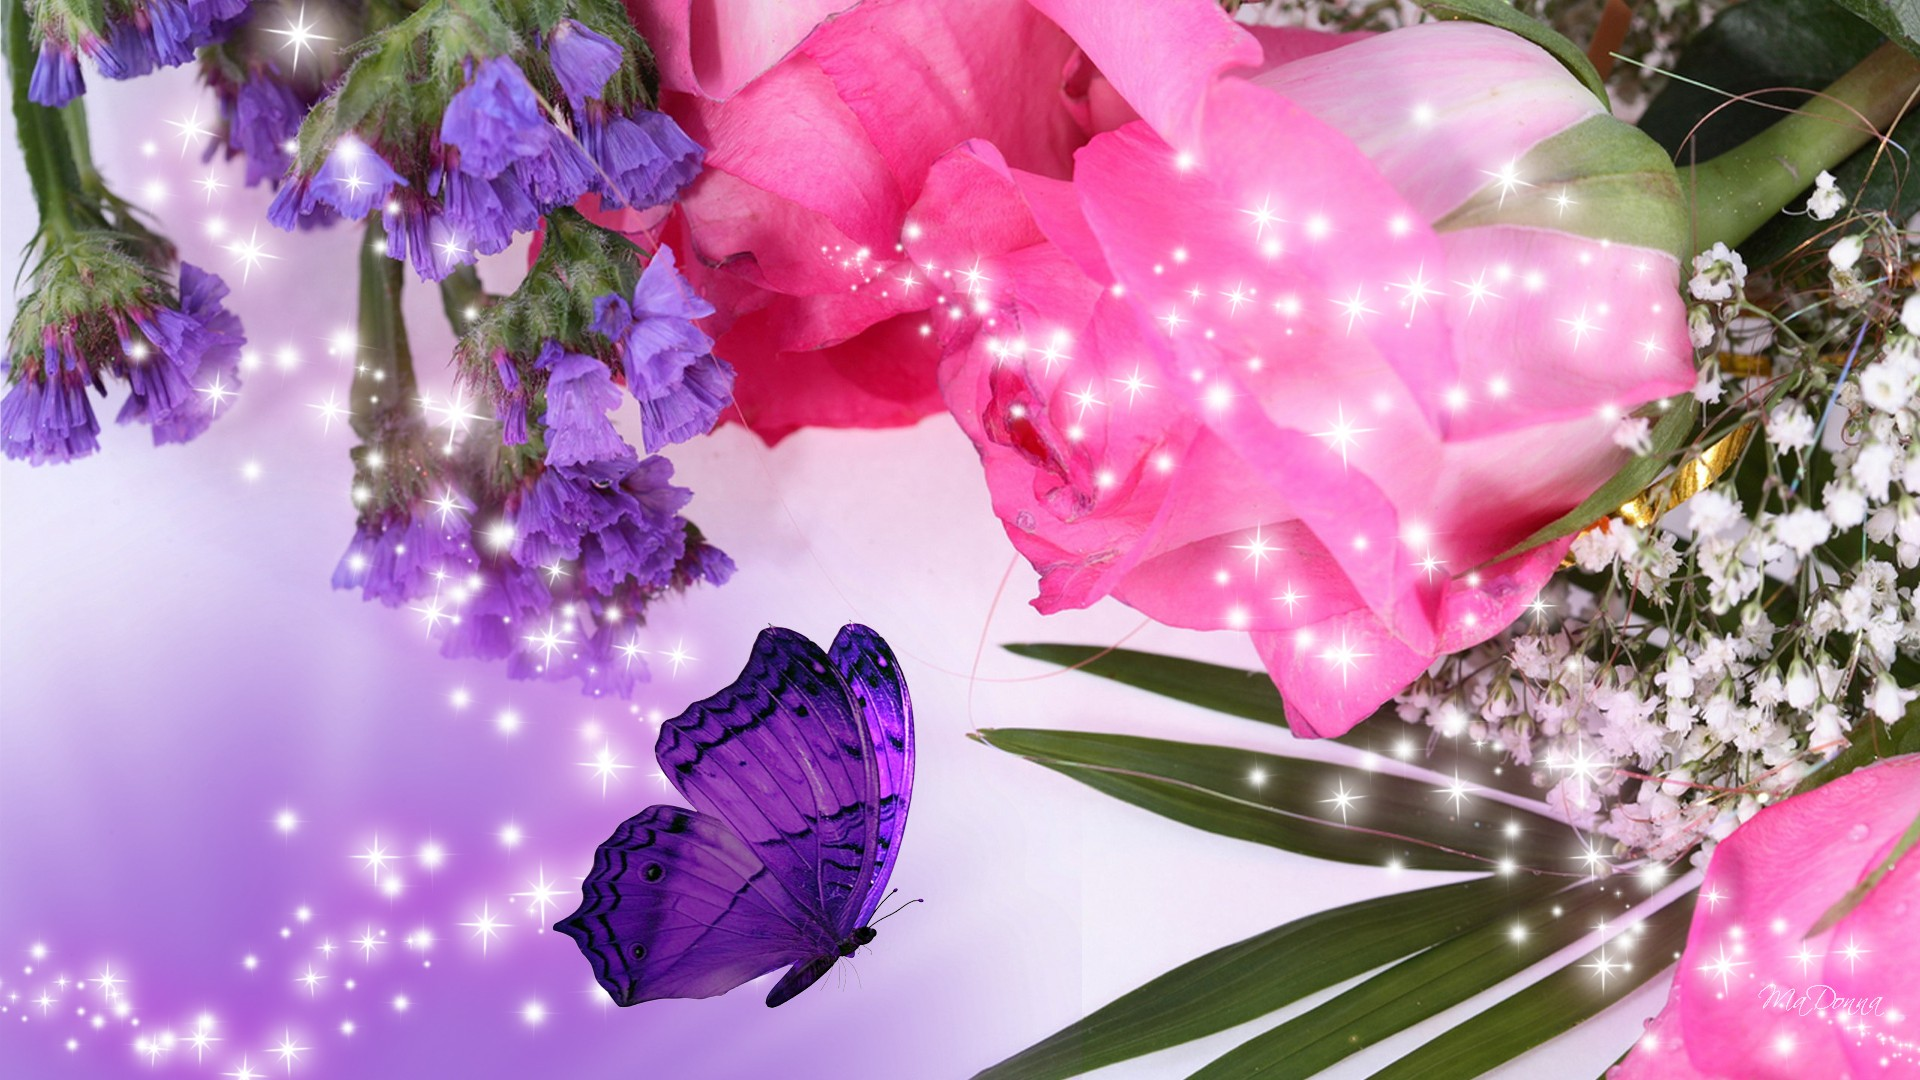 Purple rose flower 12 widescreen wallpaper hdflowerwallpaper purple rose flower widescreen wallpaper voltagebd Gallery